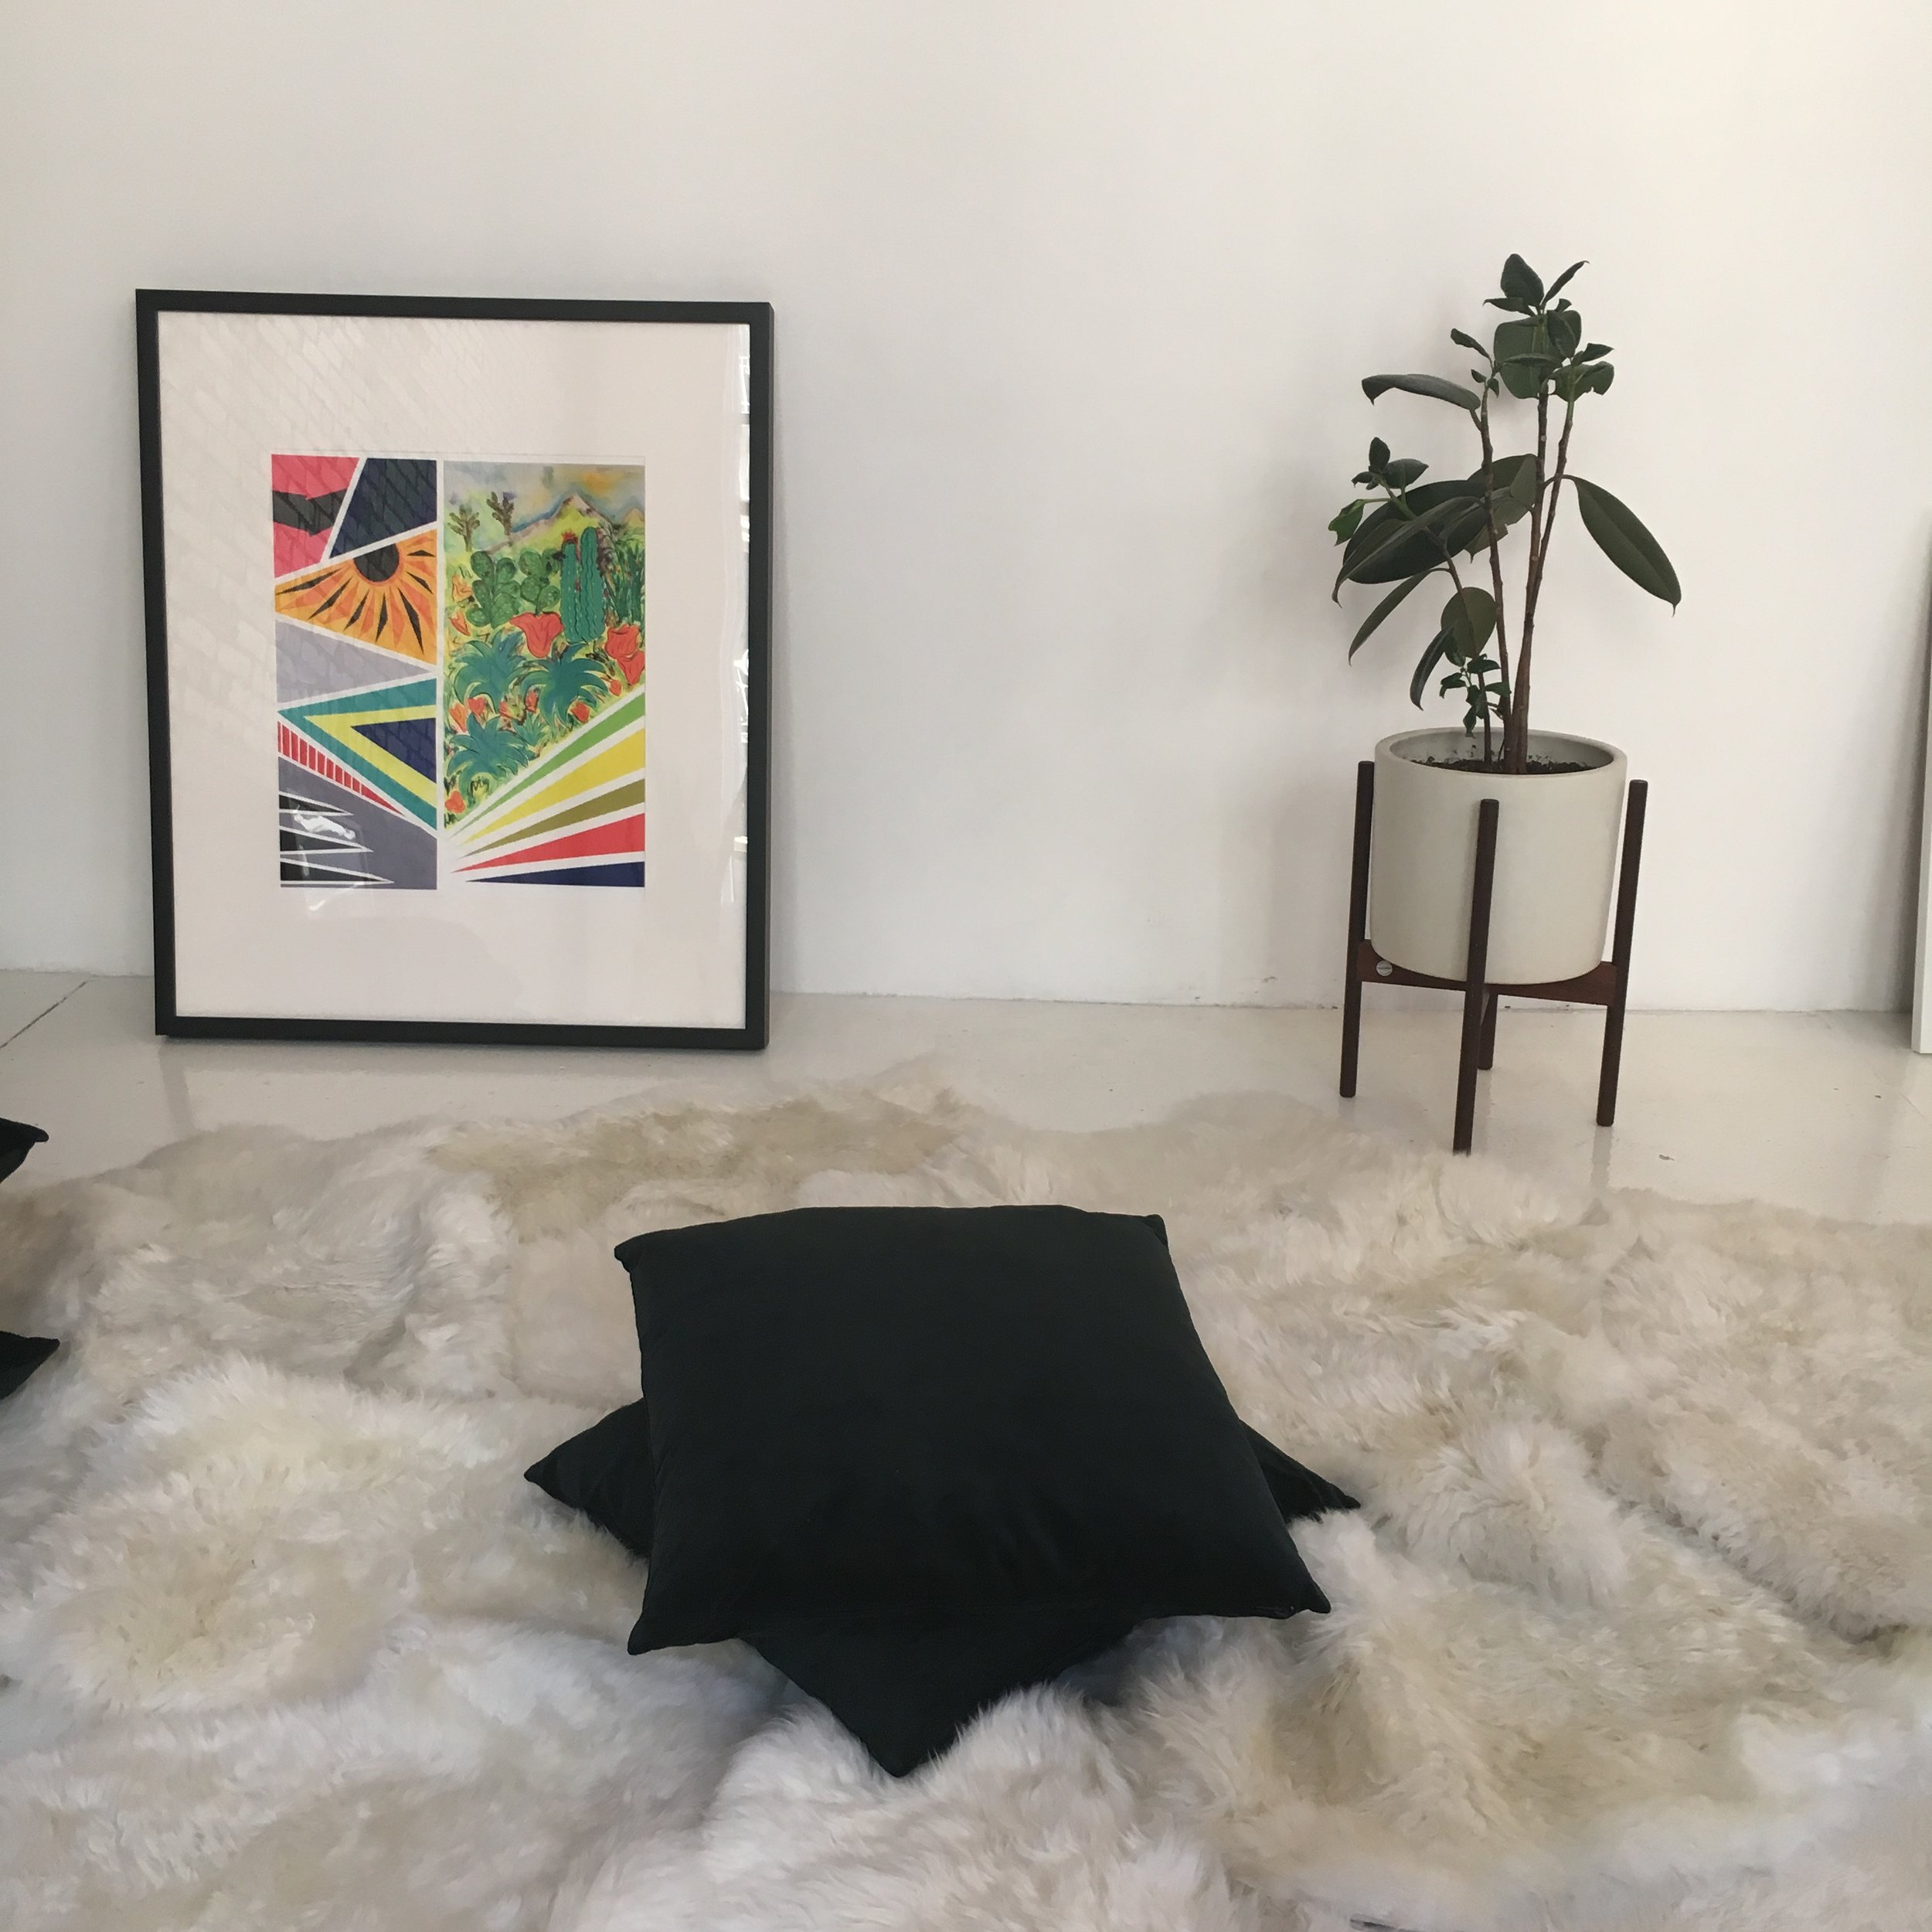 Blank Studio with The Sill plants and 20x200 artworks